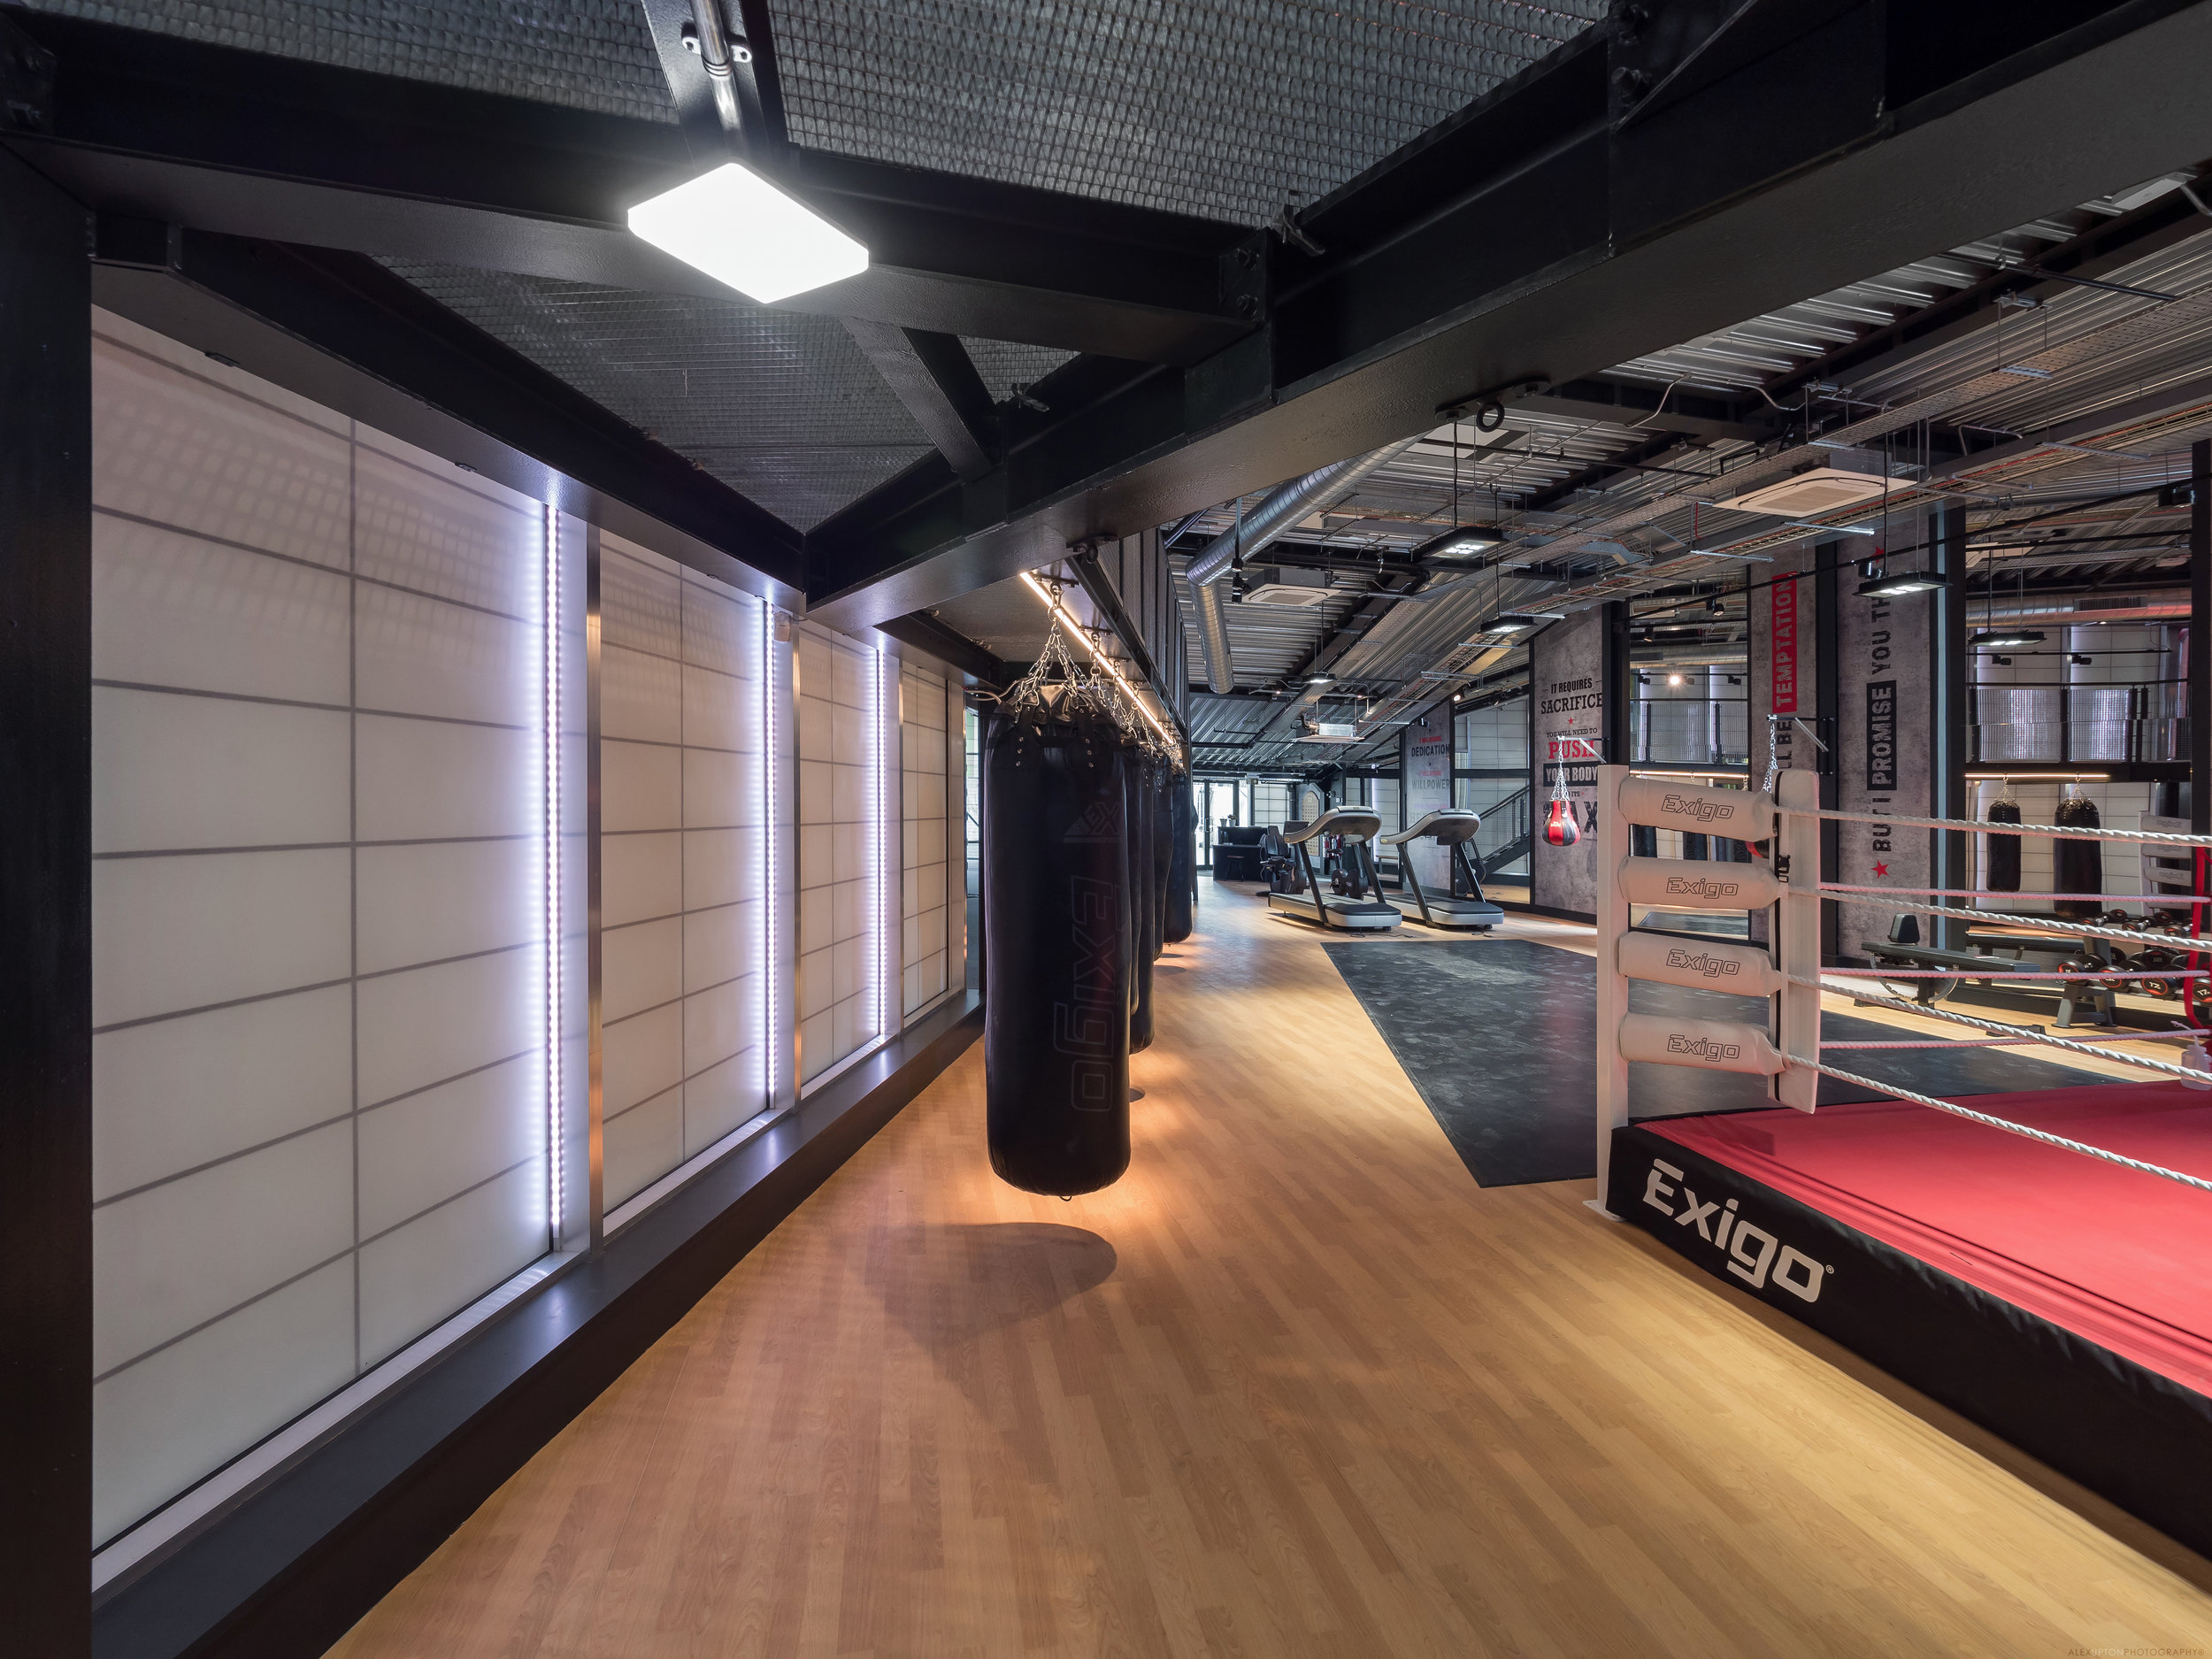 Training facilities inside Dale Youth Boxing Club